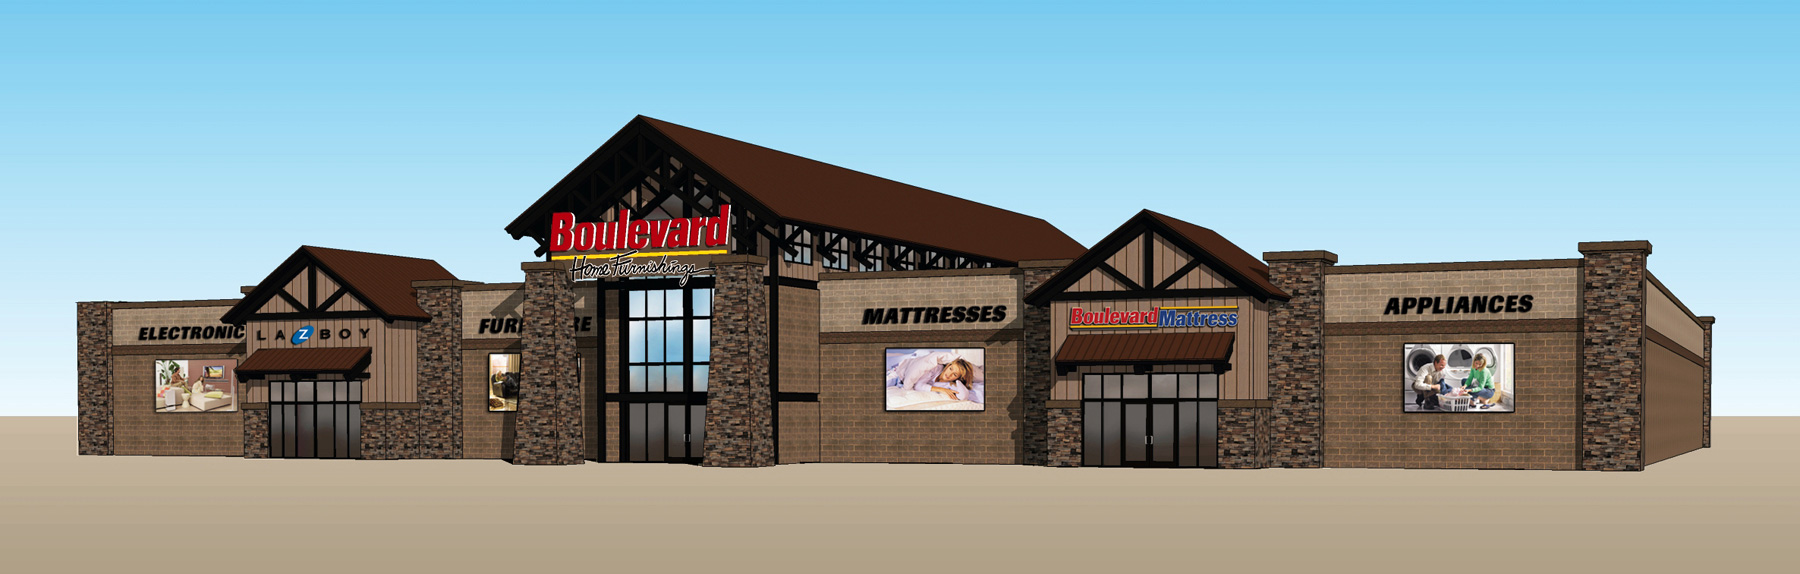 Boulevard Home Furnishings Holds Groundbreaking For New Plaza Store In Cedar City Stgnews